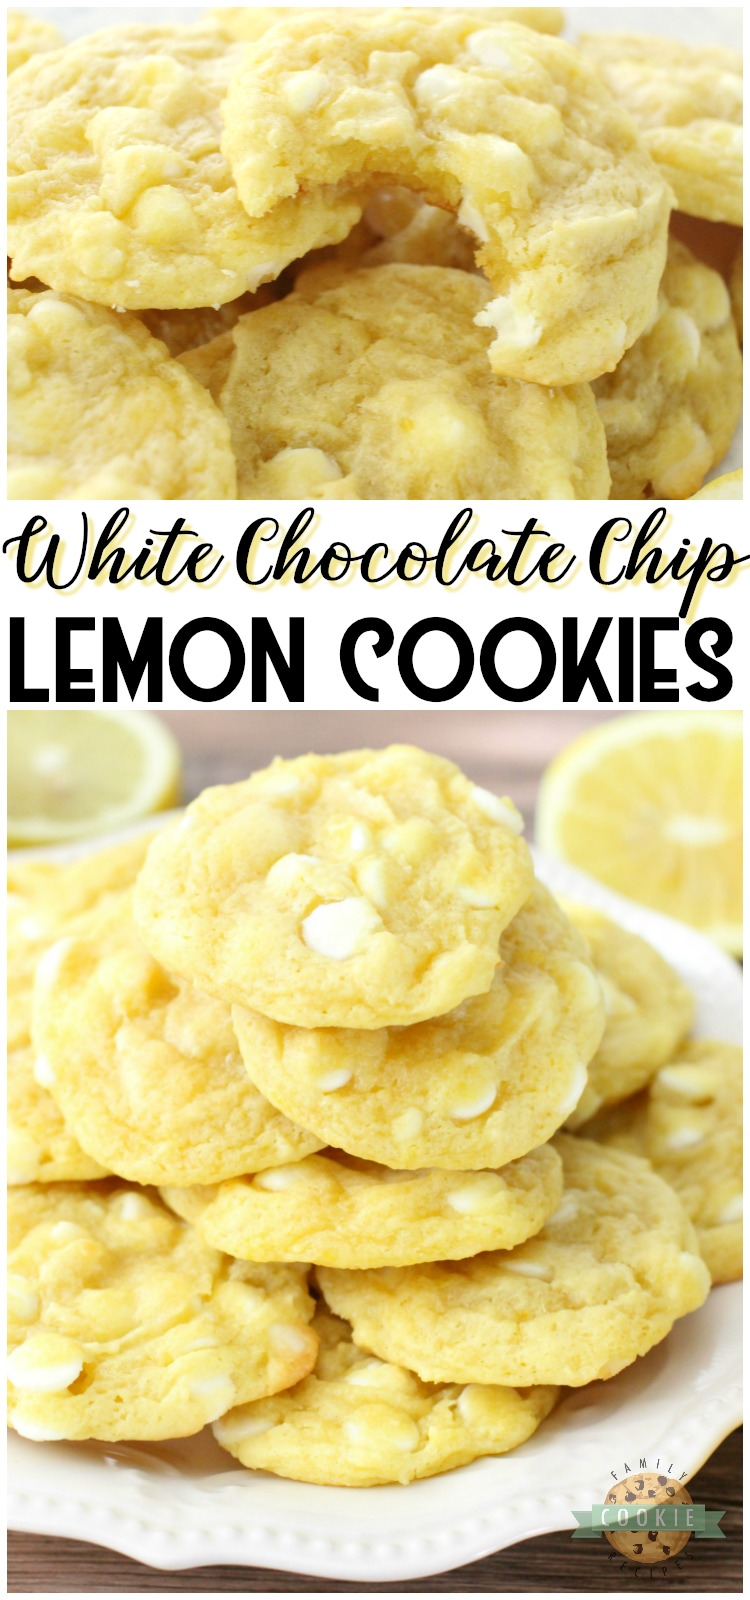 White Chocolate Chip Lemon Cookies are soft, chewy and perfectly sweet lemon cookies! White chocolate chips & lemon pudding mix add great flavor and texture to these delicious spring cookies.  #lemon #cookies #pudding #baking #dessert #recipe from FAMILY COOKIE RECIPES